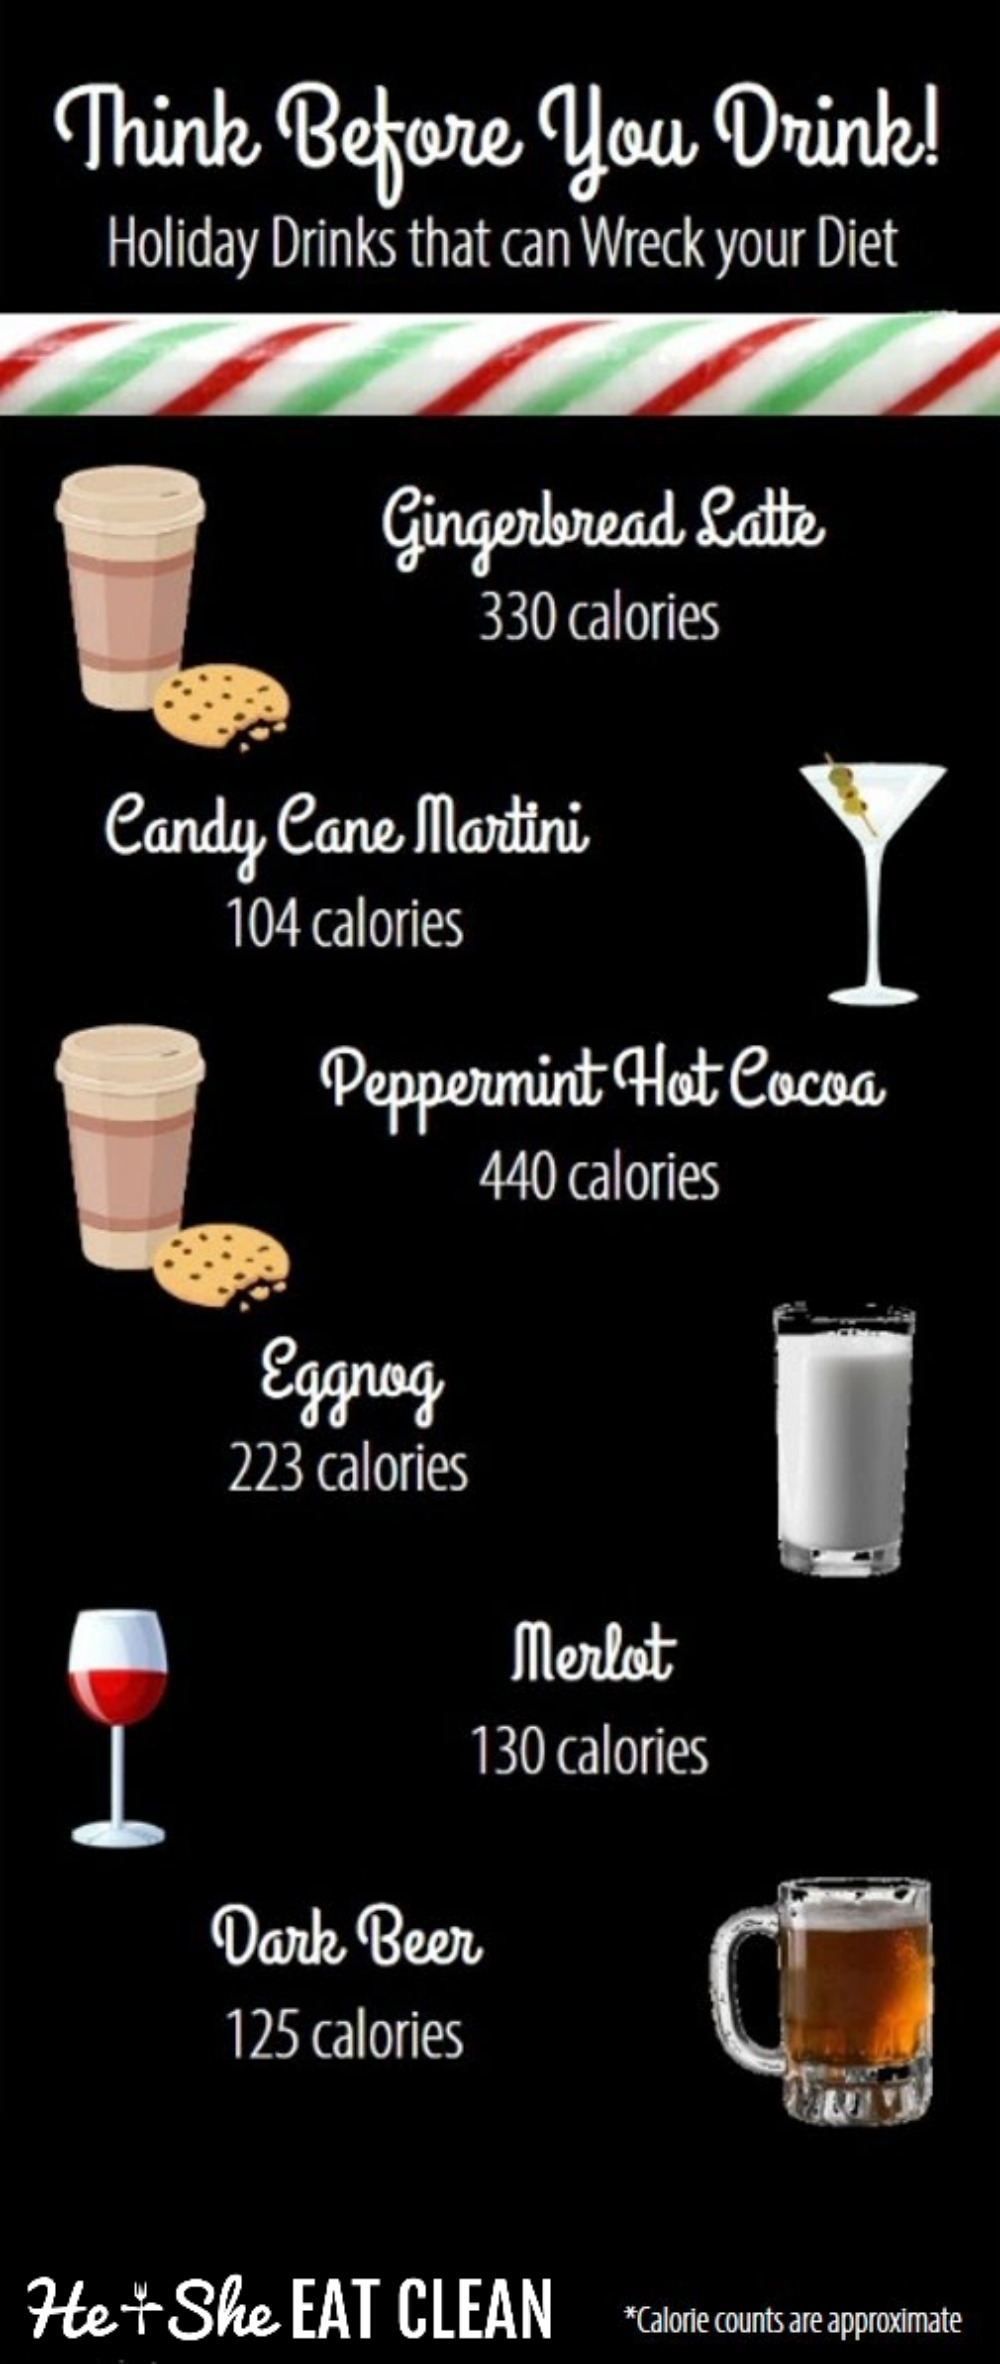 info graphic of alcoholic holiday drinks and calorie counts